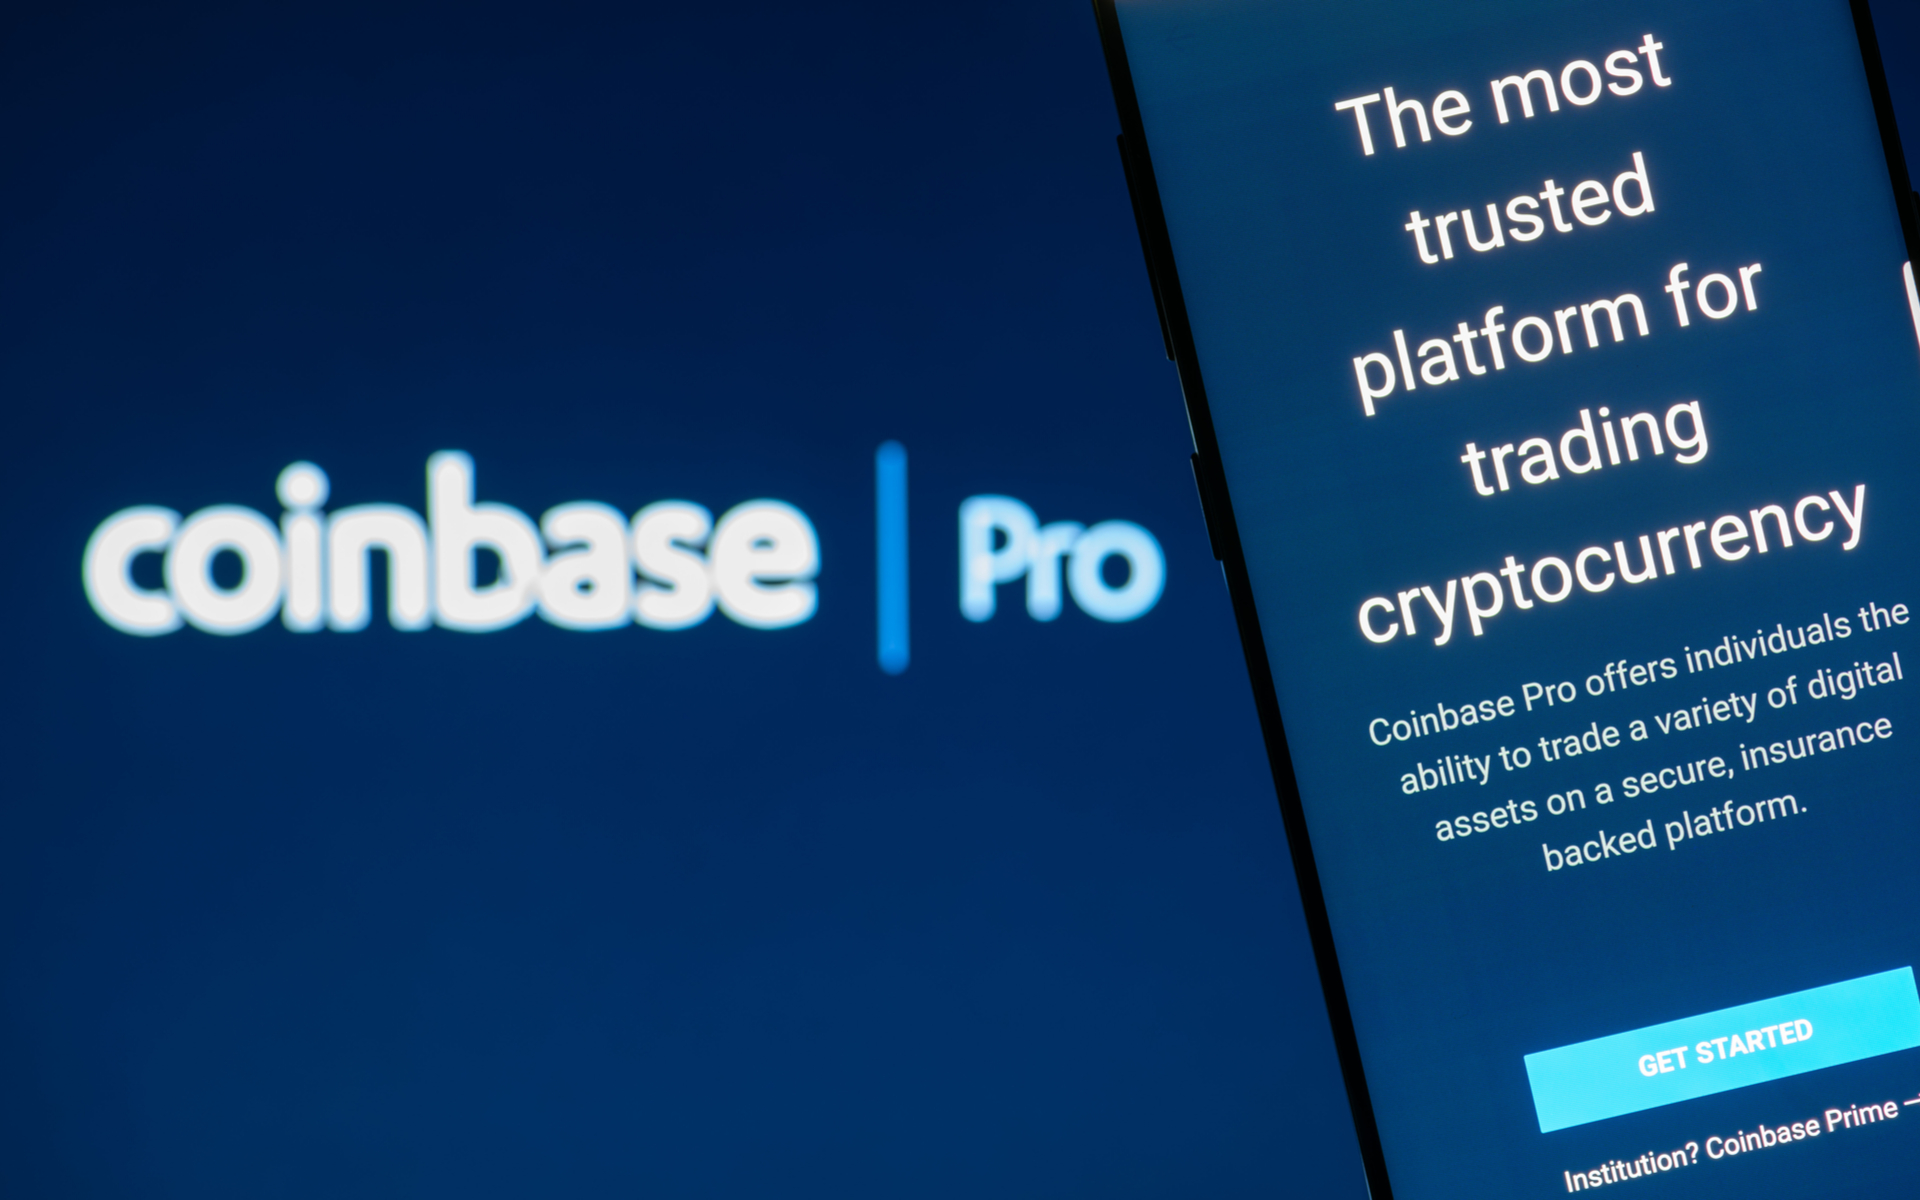 Coinbase Pro Adds 0x (ZRX) Token Ahead of Mass Rollout